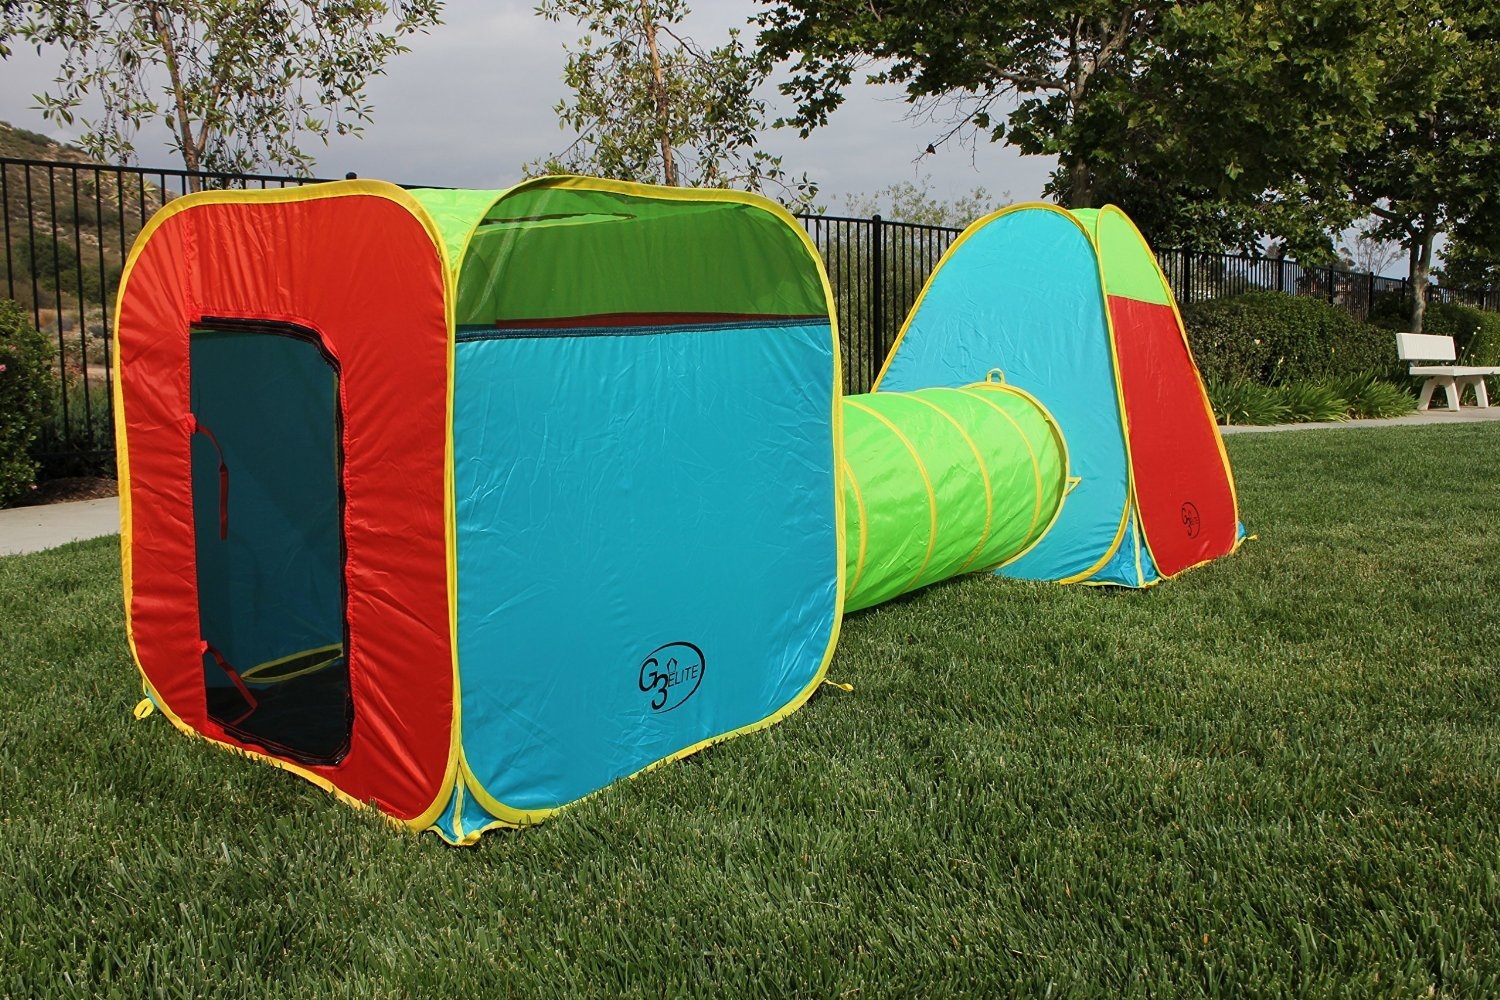 95b0253ab381 G3Elite Kids Play Tent 3 Piece Pop Up Set Foldable with Attachable Tunnel  and Carry Case Indoor/Outdoor Boys/Girls Toddlers Bright Colorful Easy Set  ...